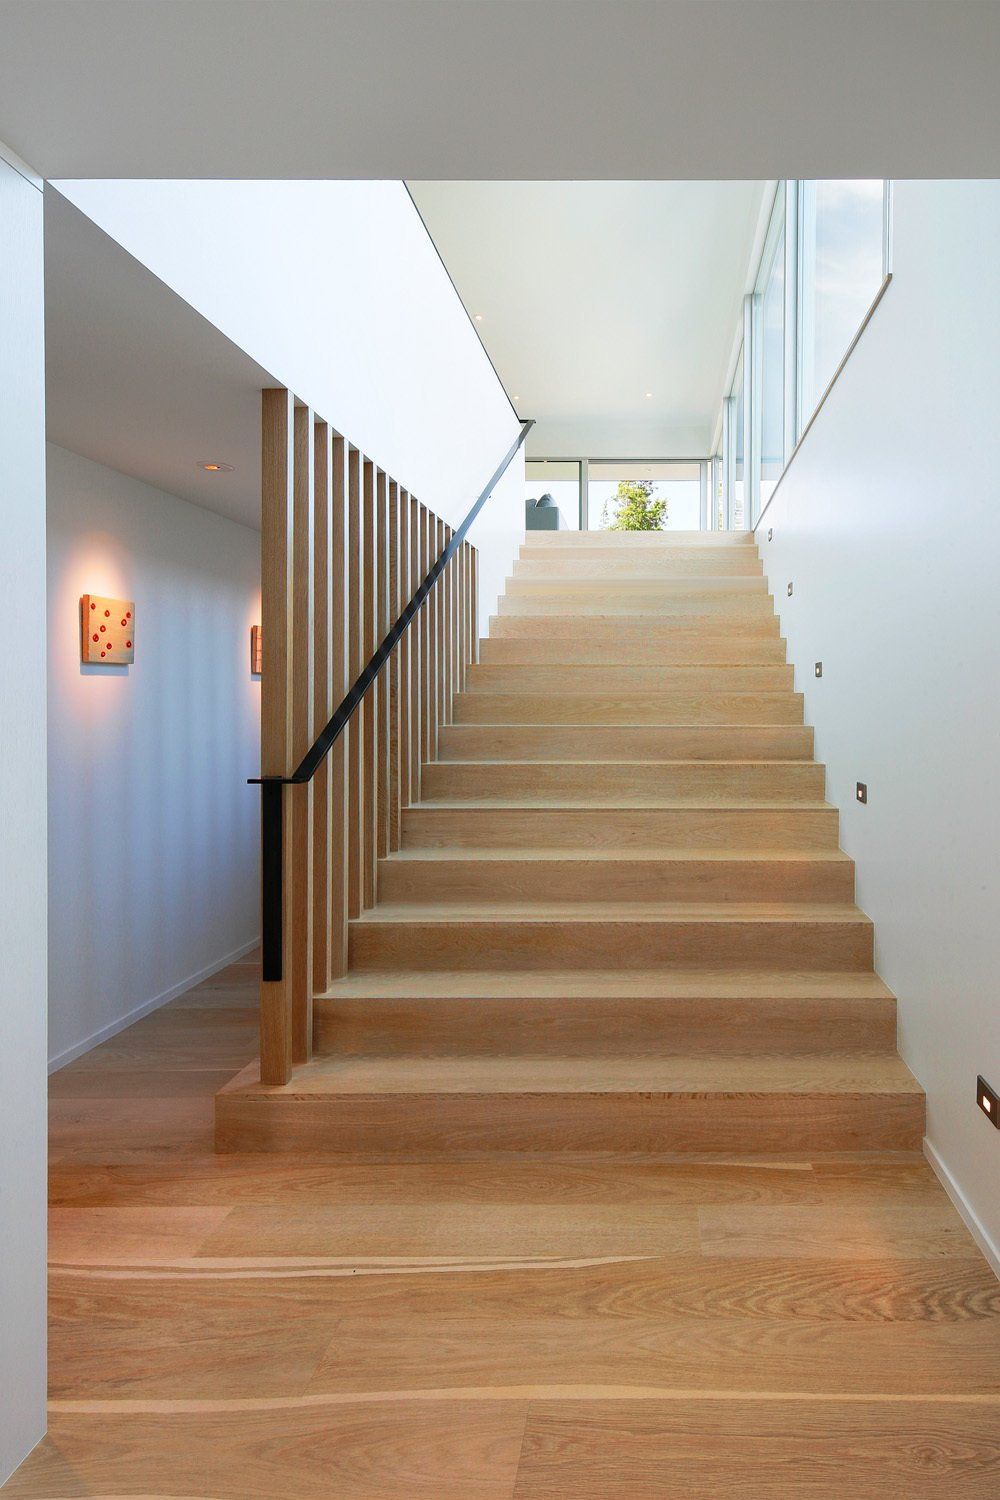 Custom bleached-white oak flooring covers the floors, including on the staircase to the property's second floor. Juno five-inch LED recessed wall lighting illuminates the steps at night.  Portage Bay Bungalow by Kelly Dawson